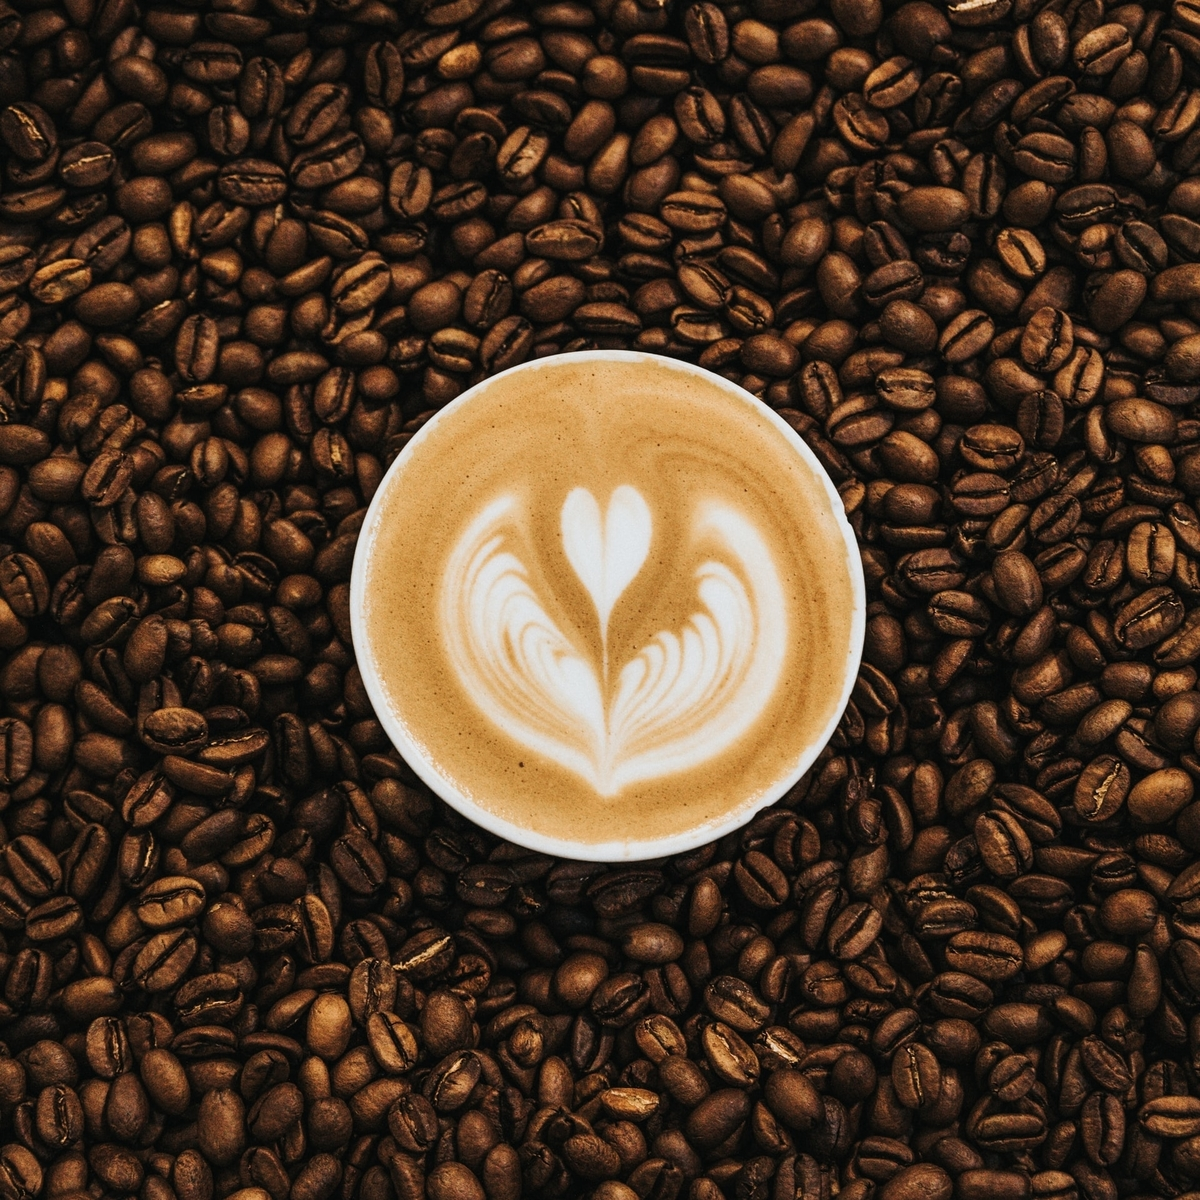 What are the Health Effects of Chlorogenic Acid in Coffee?